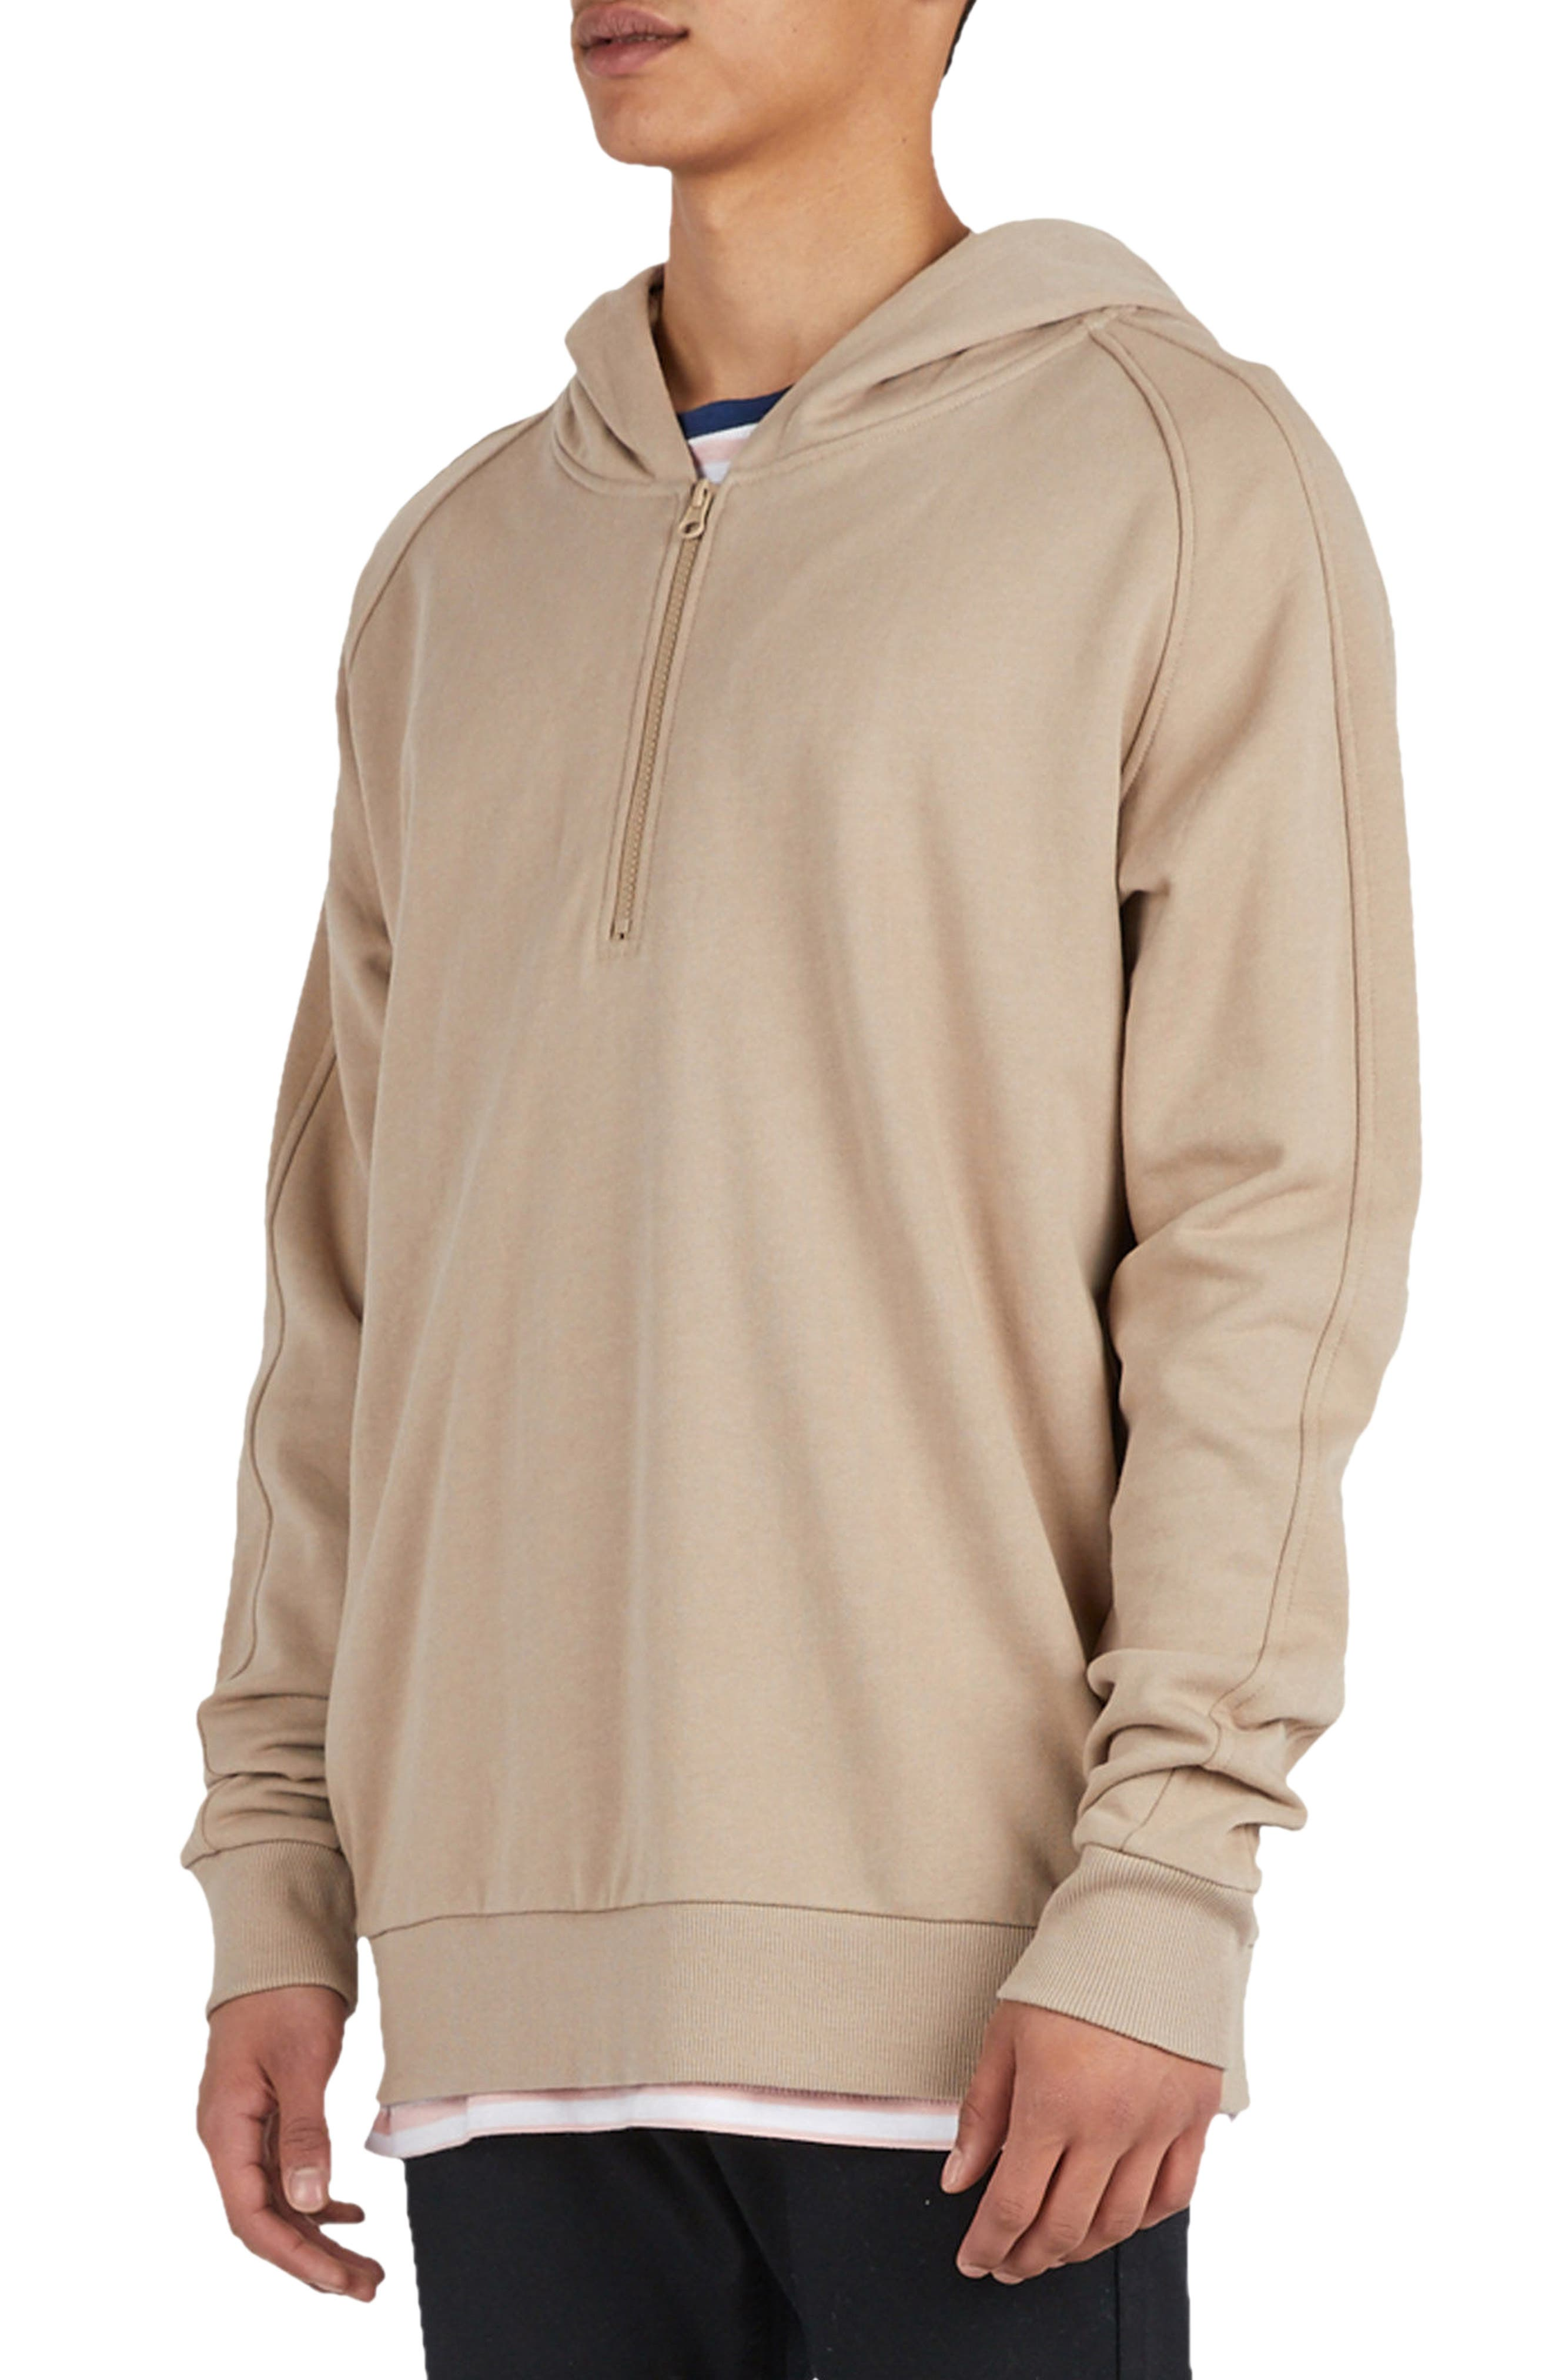 Olympic Zip Pullover Hoodie,                             Alternate thumbnail 7, color,                             260